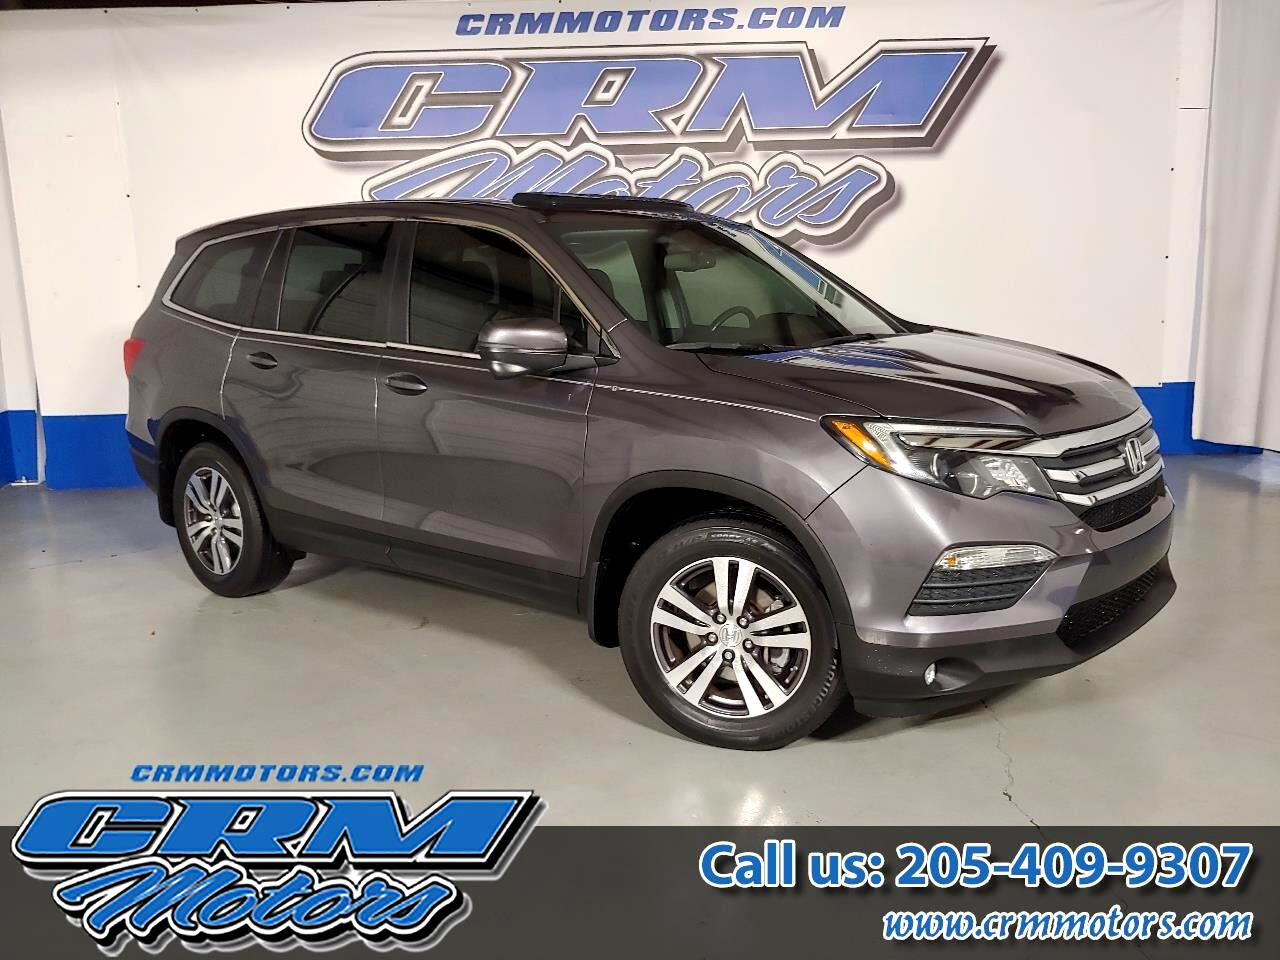 2016 Honda Pilot EX-L, 2WD, LOADED, SAFE WITH GREAT GAS MILEAGE!